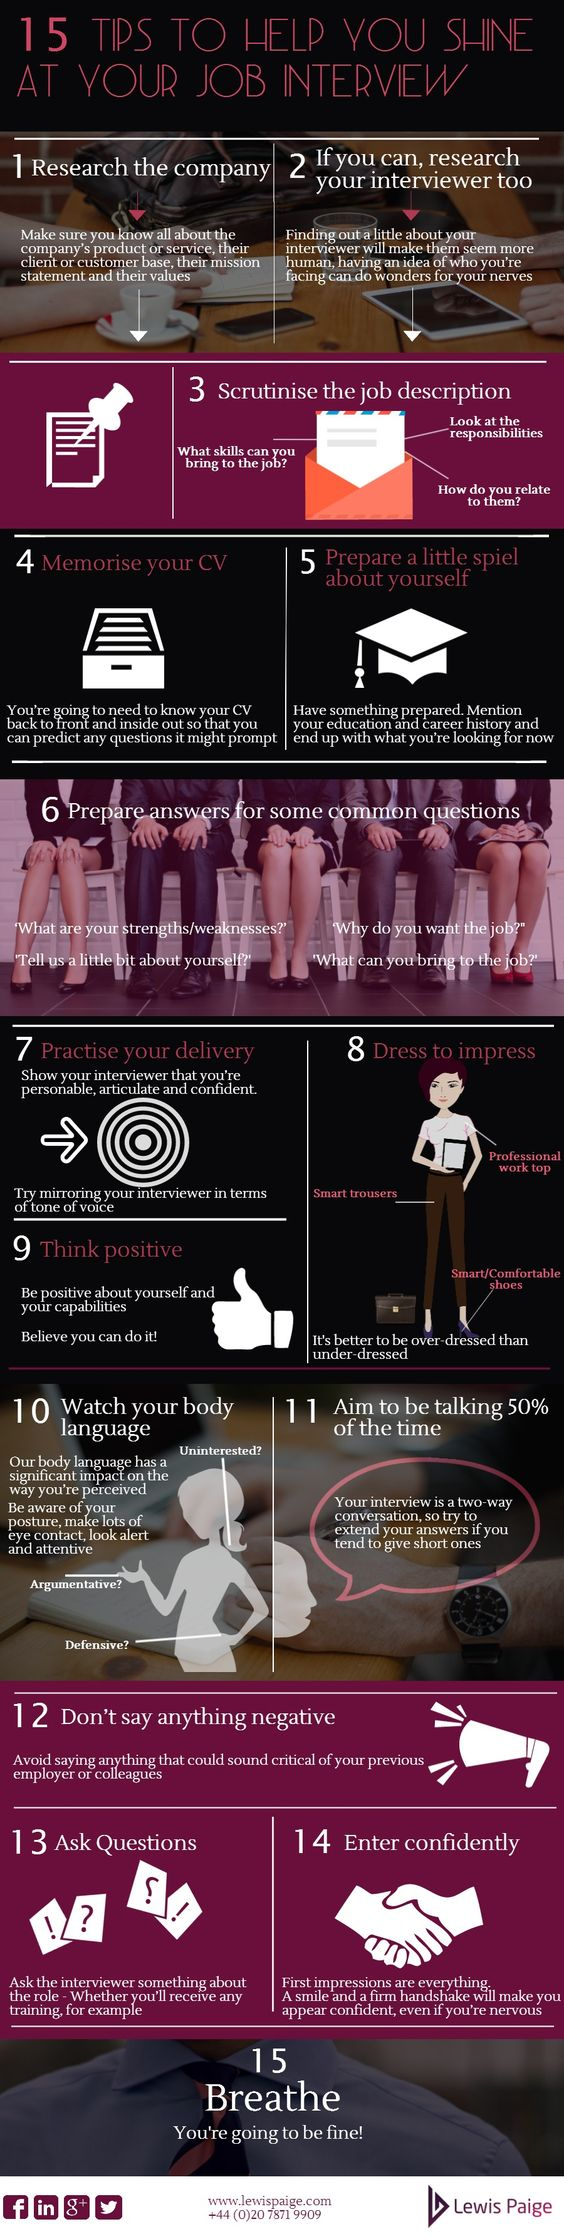 tips to help you shine at your job interview infographic straight forward solid list of interview tips that work aiming to speak 50